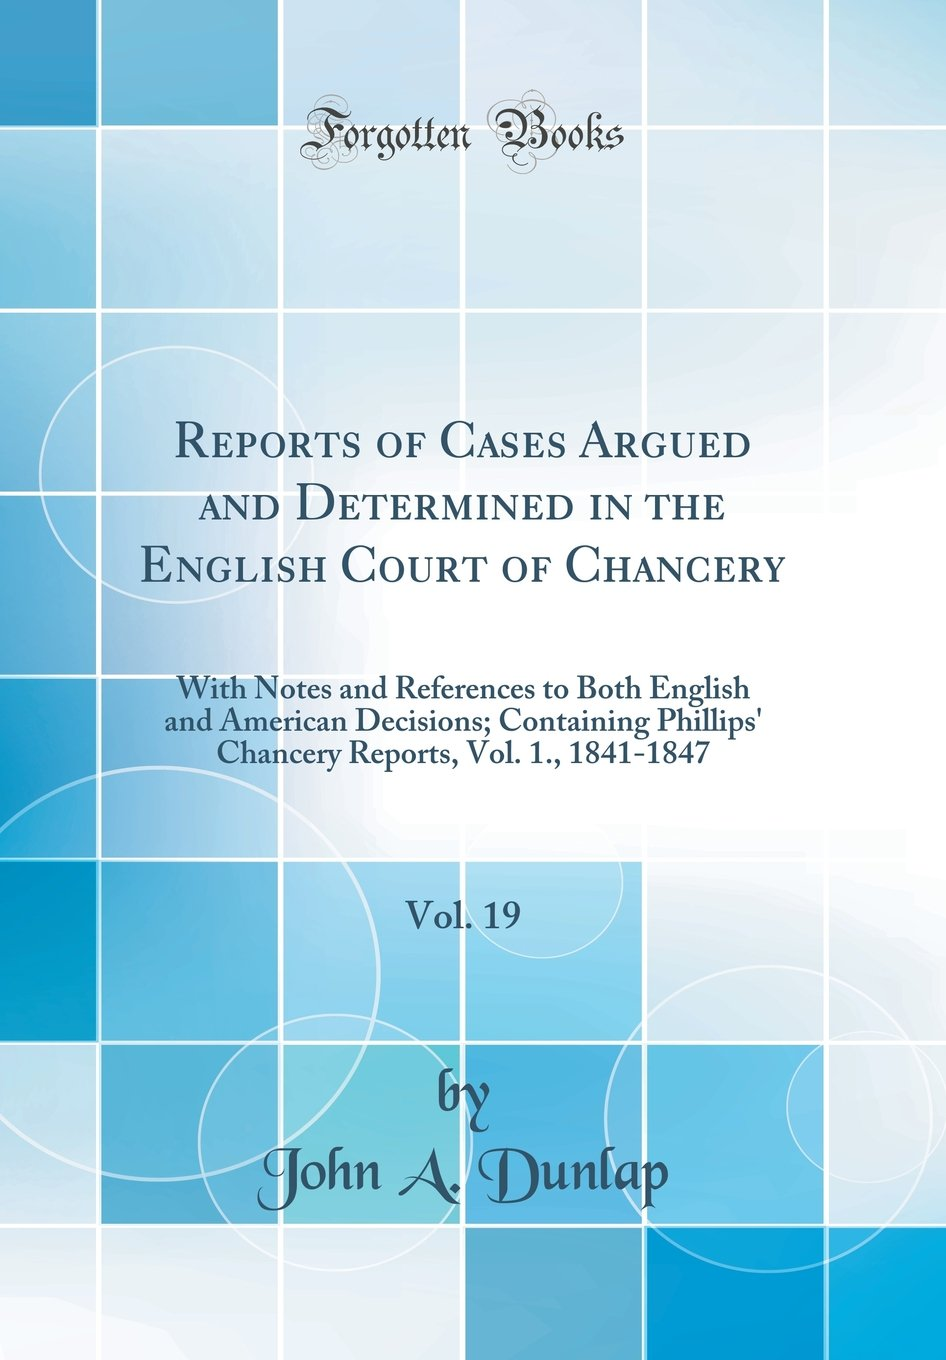 Download Reports of Cases Argued and Determined in the English Court of Chancery, Vol. 19: With Notes and References to Both English and American Decisions; ... Reports, Vol. 1., 1841-1847 (Classic Reprint) PDF